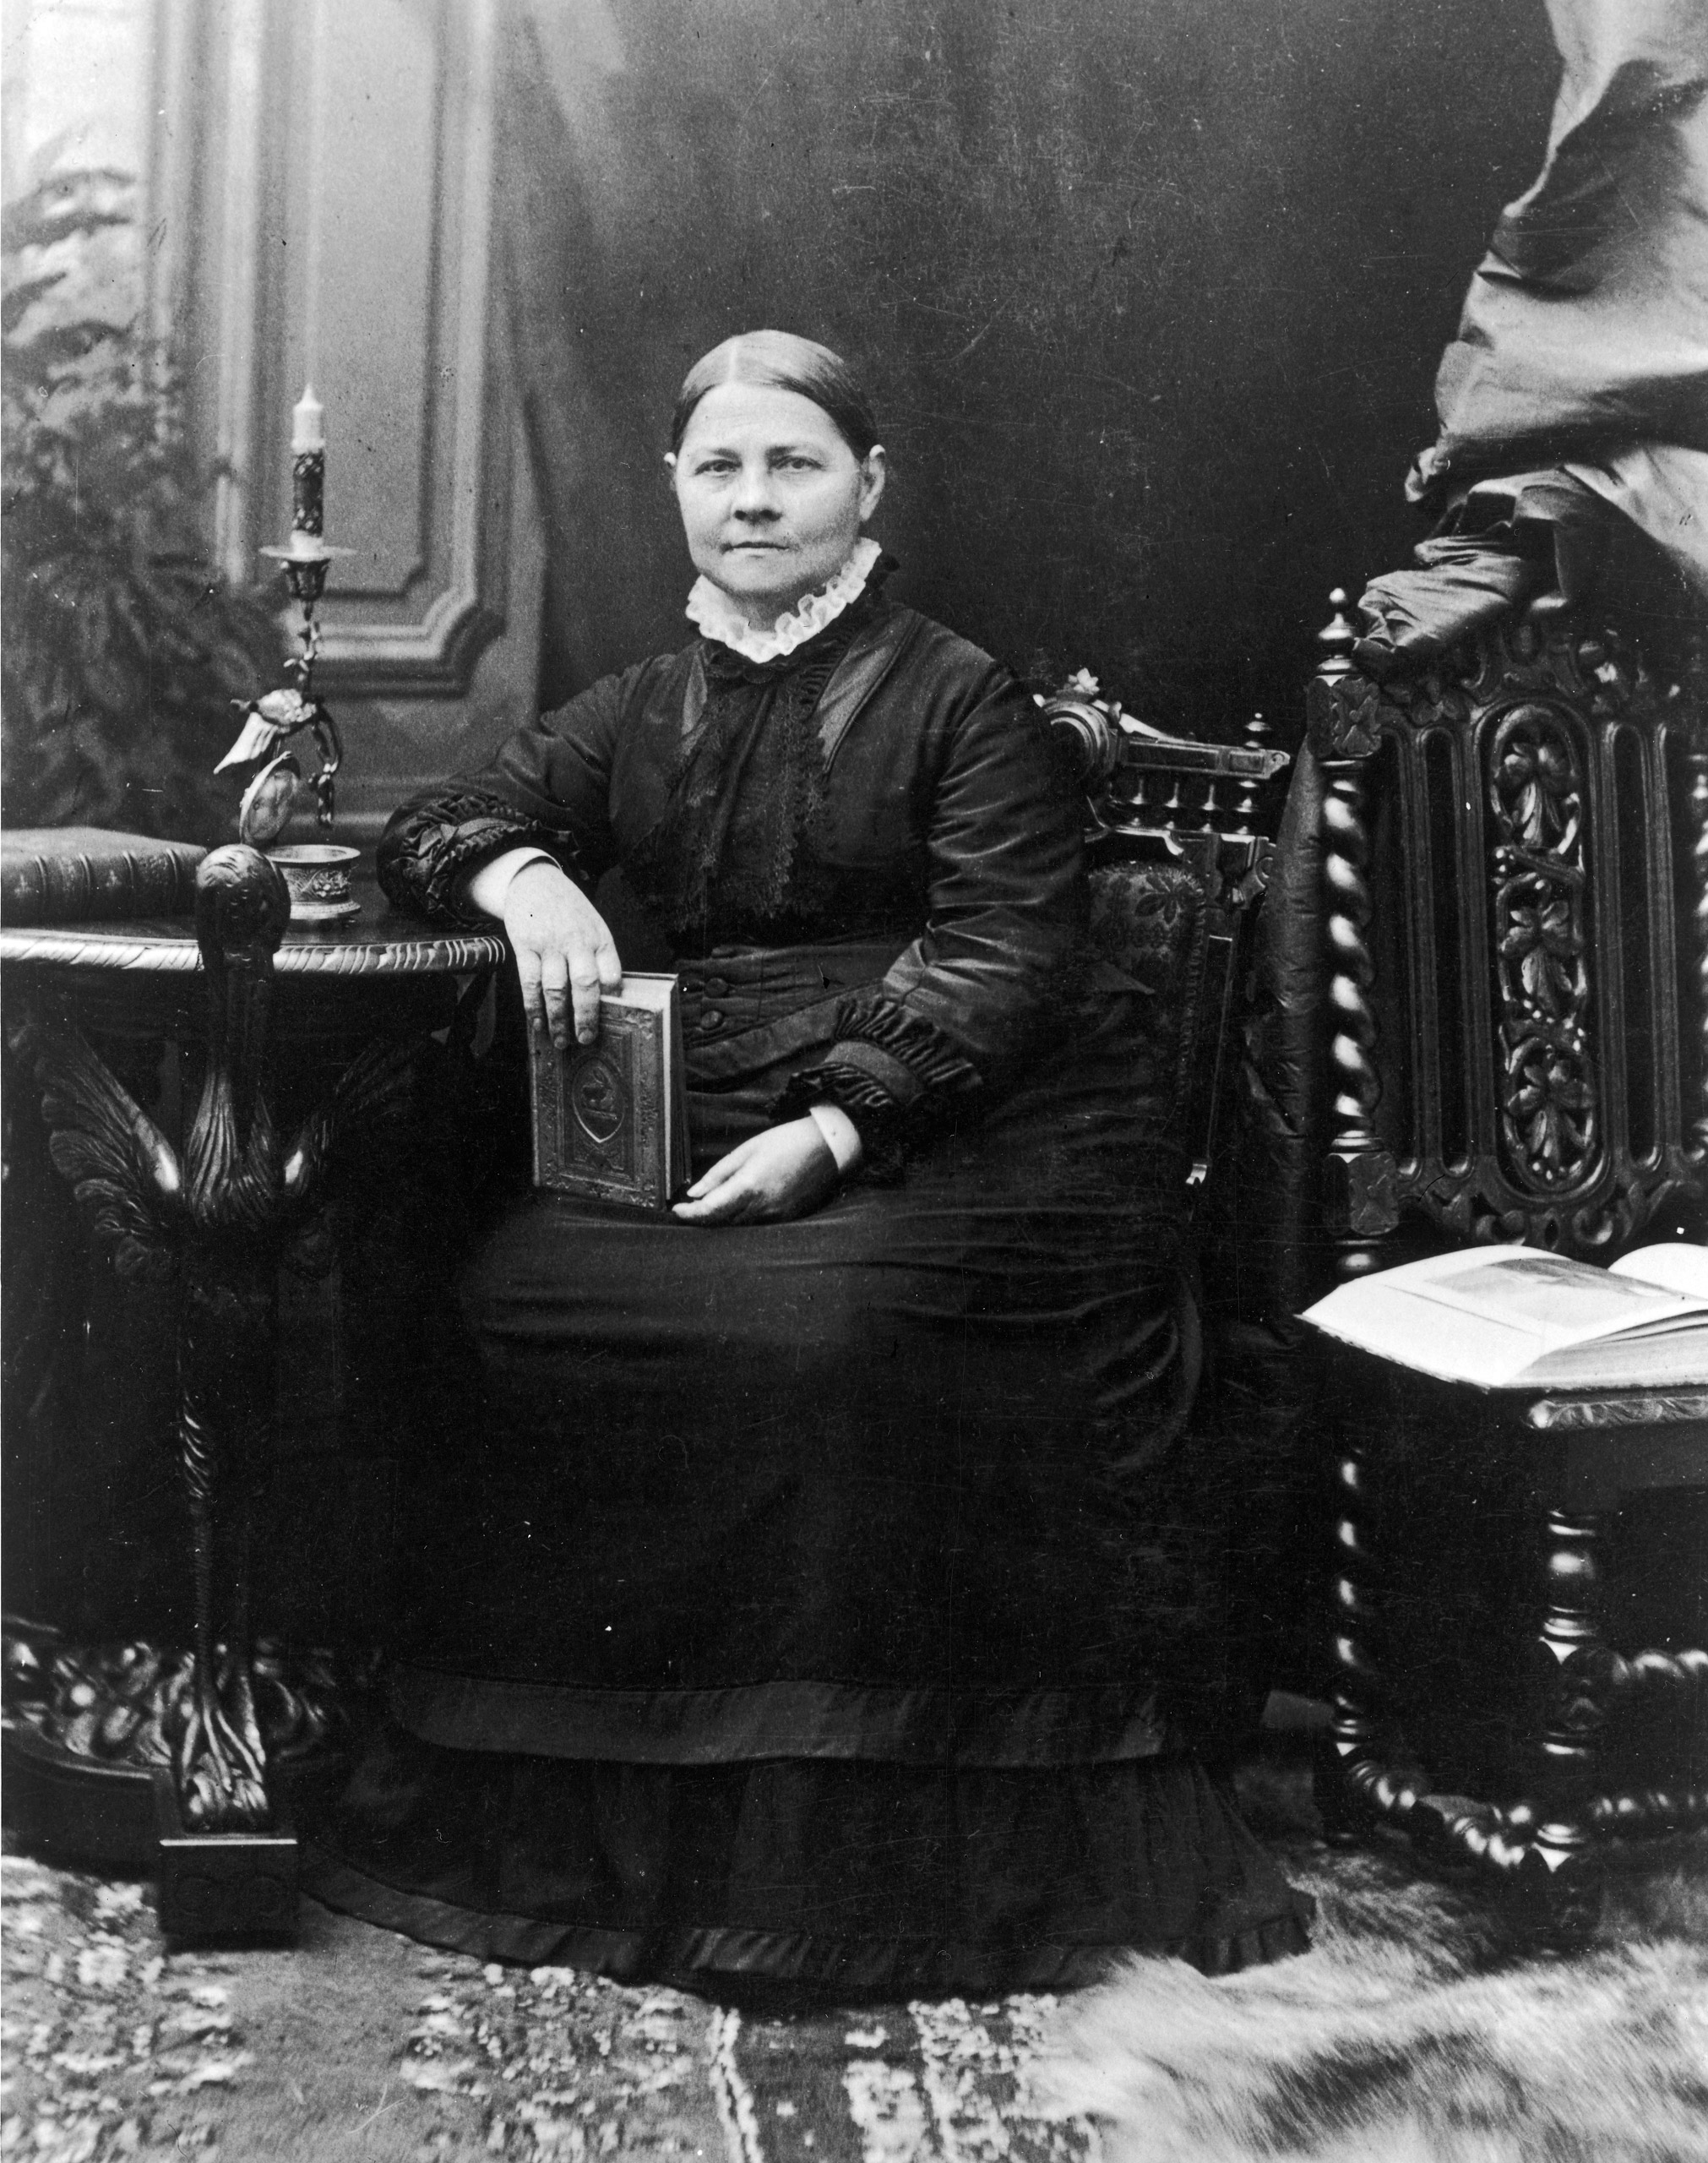 Lucy Stone  (1818-1893), pictured circa 1860s.Stone, the first woman from Massachusetts to earn a college degree, was an abolitionist and suffrage supporter. She helped plan the first U.S. Women's Rights Convention in 1850.